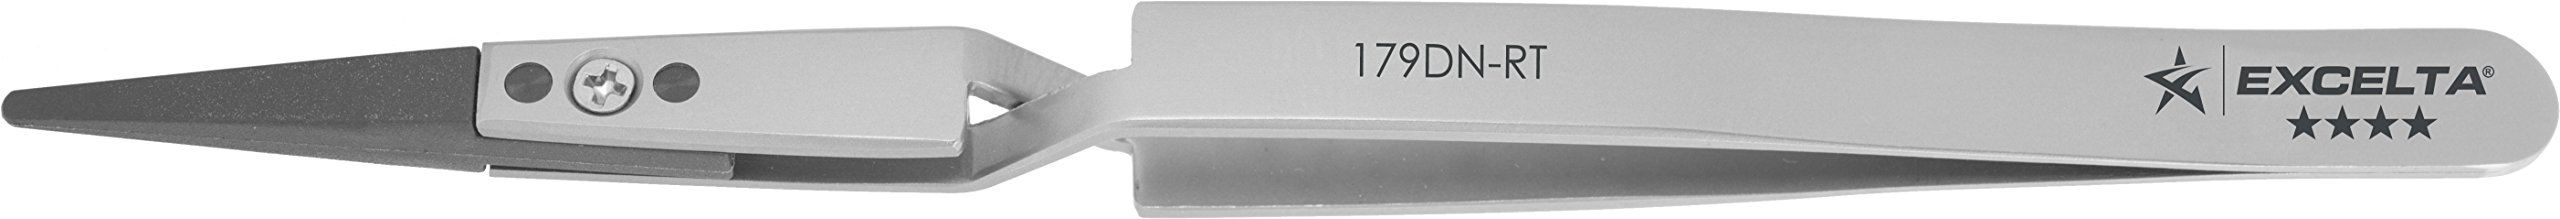 Excelta - 179DN-RT - Tweezers - Replaceable Tip - Straight - Four Star - Copolymer Tips - Cross Action, 0.06'' Height, 0.38'' Wide, 1.5'' Length